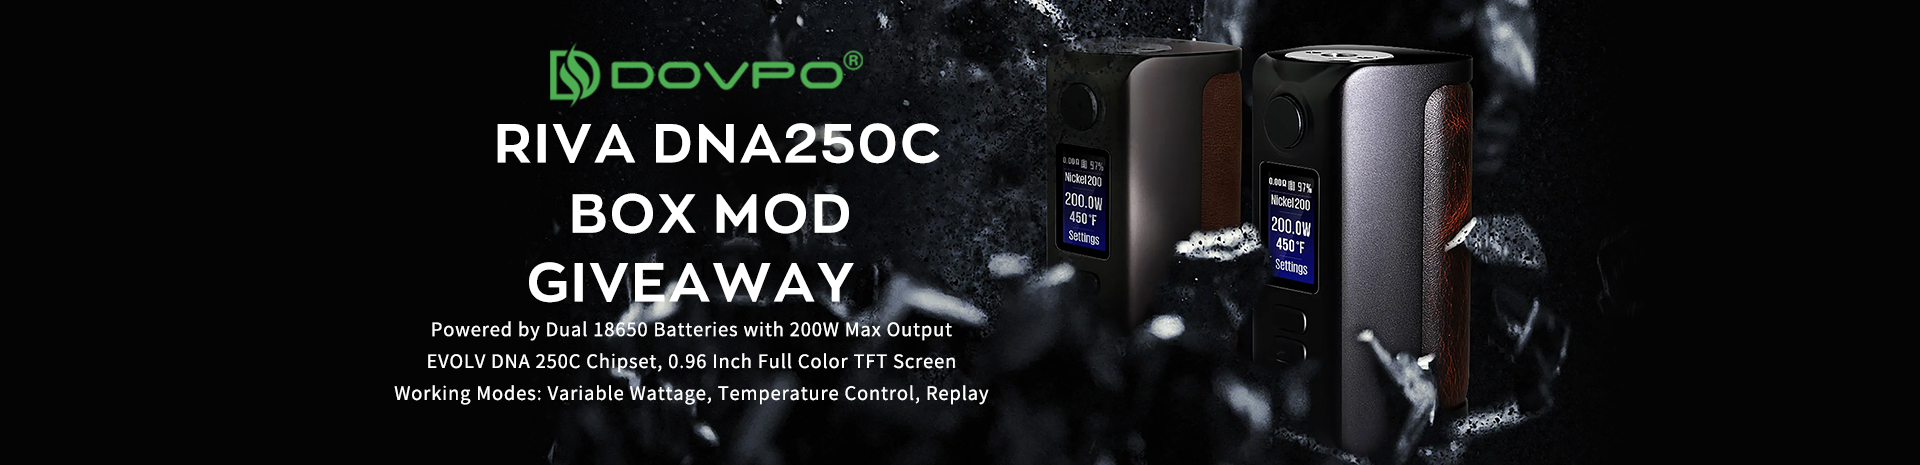 DOVPO Riva DNA250C Box Mod Giveaway Banner